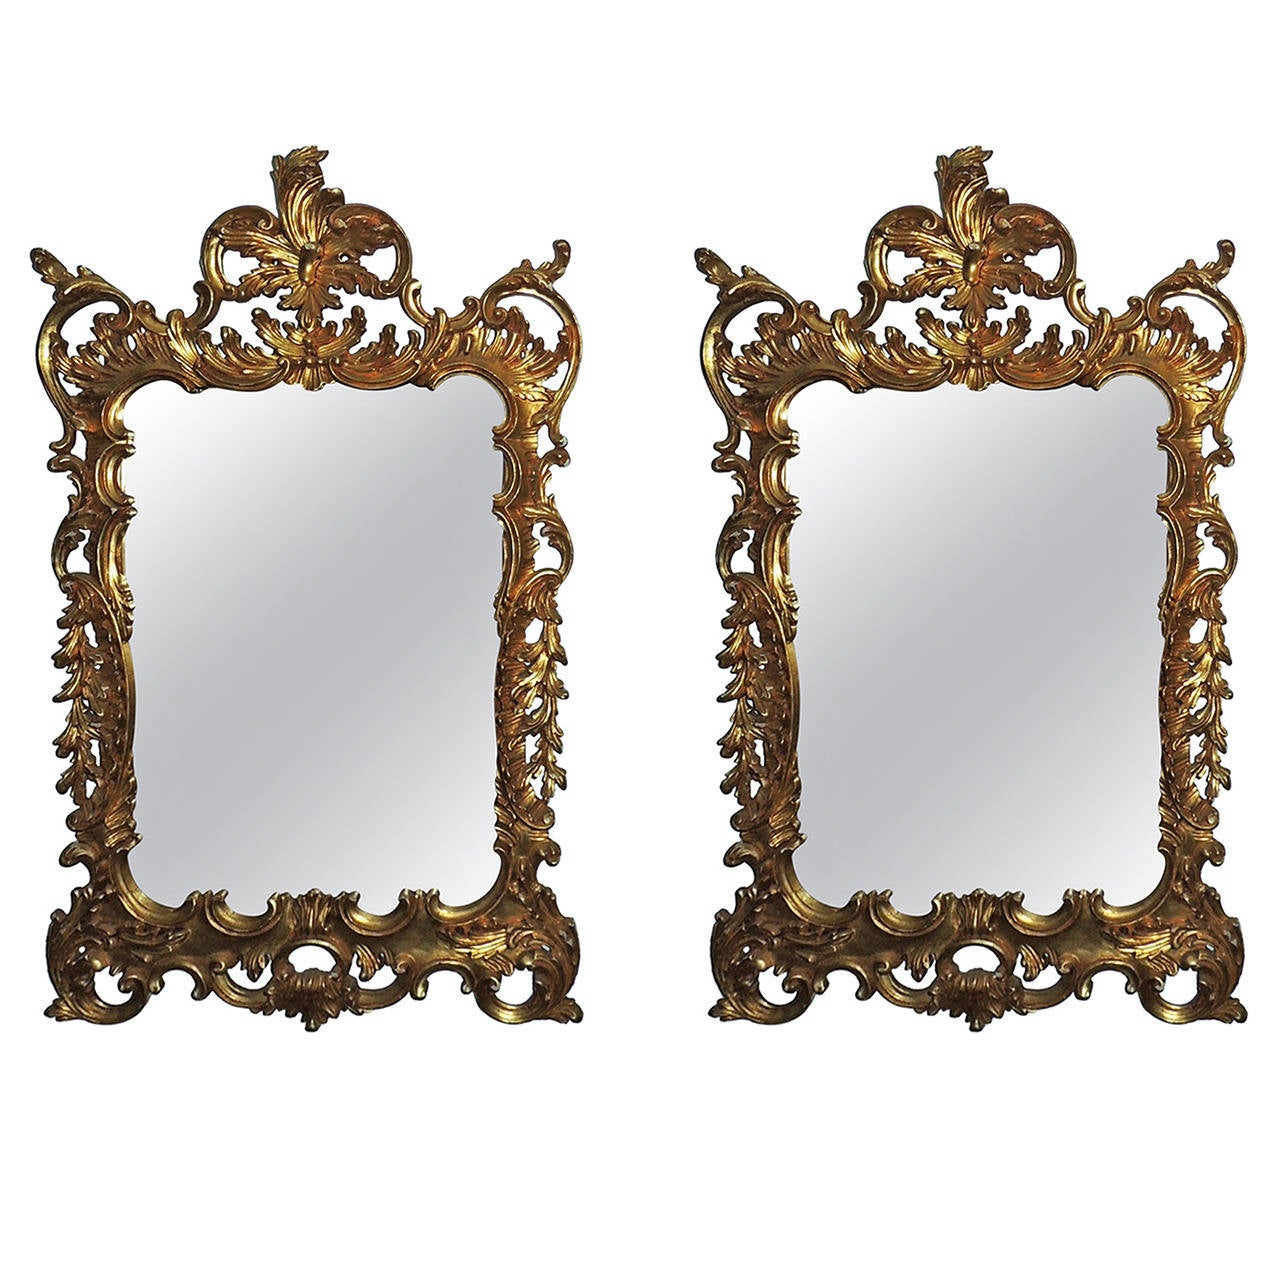 Wonderful Pair of Italian Gilt Carved Wood Rococo Mirrors with Beveled Edges